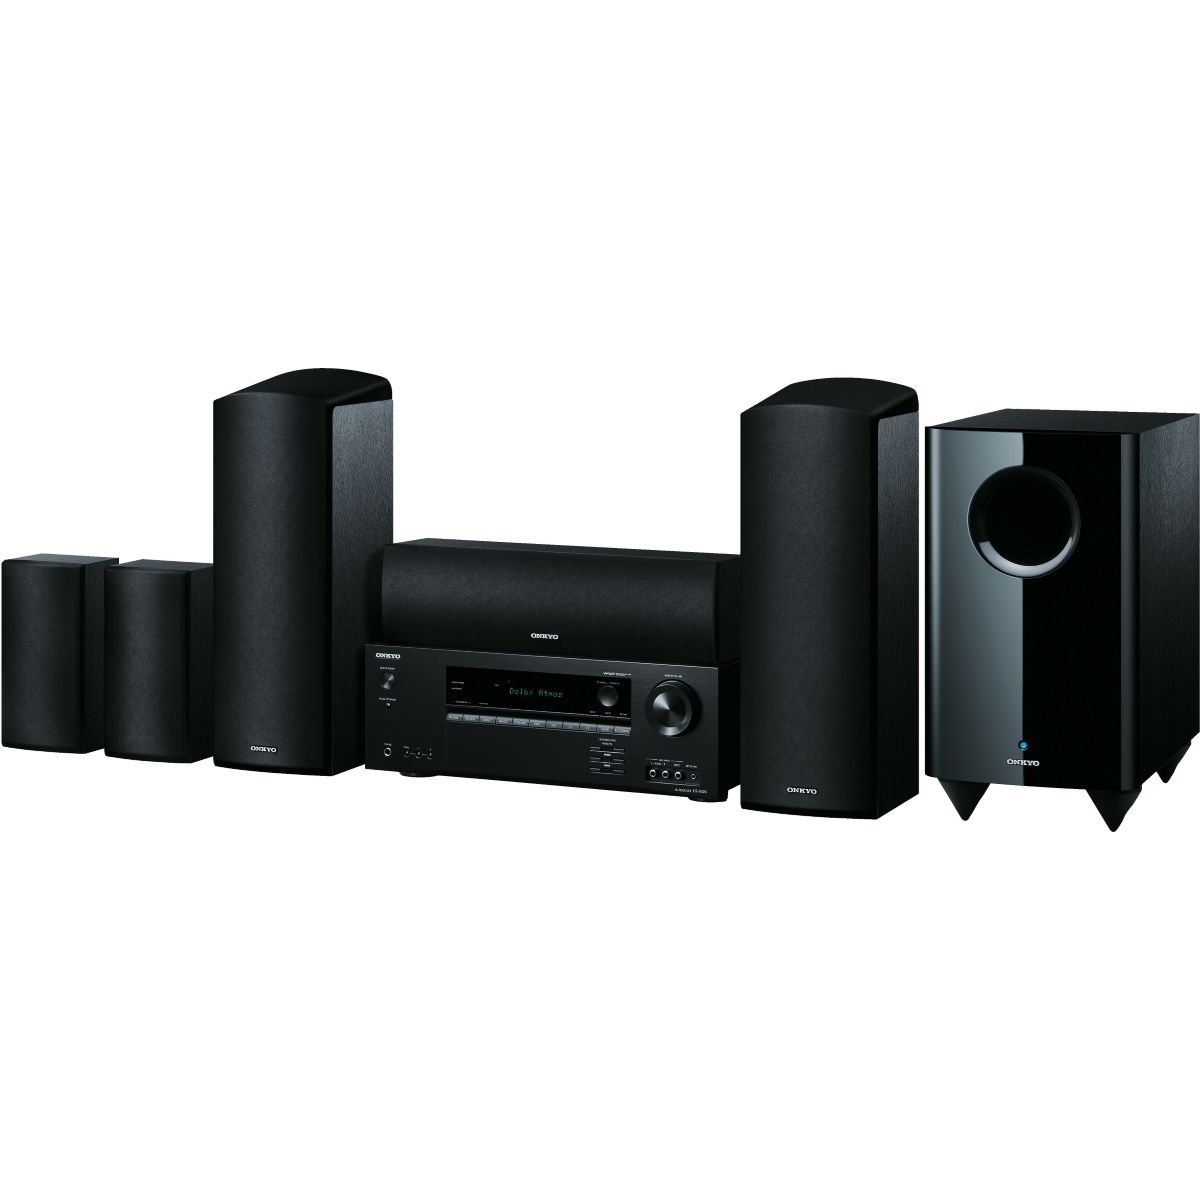 Pack Home Cinema ONKYO HTS-5805 DOLBY ATMOS